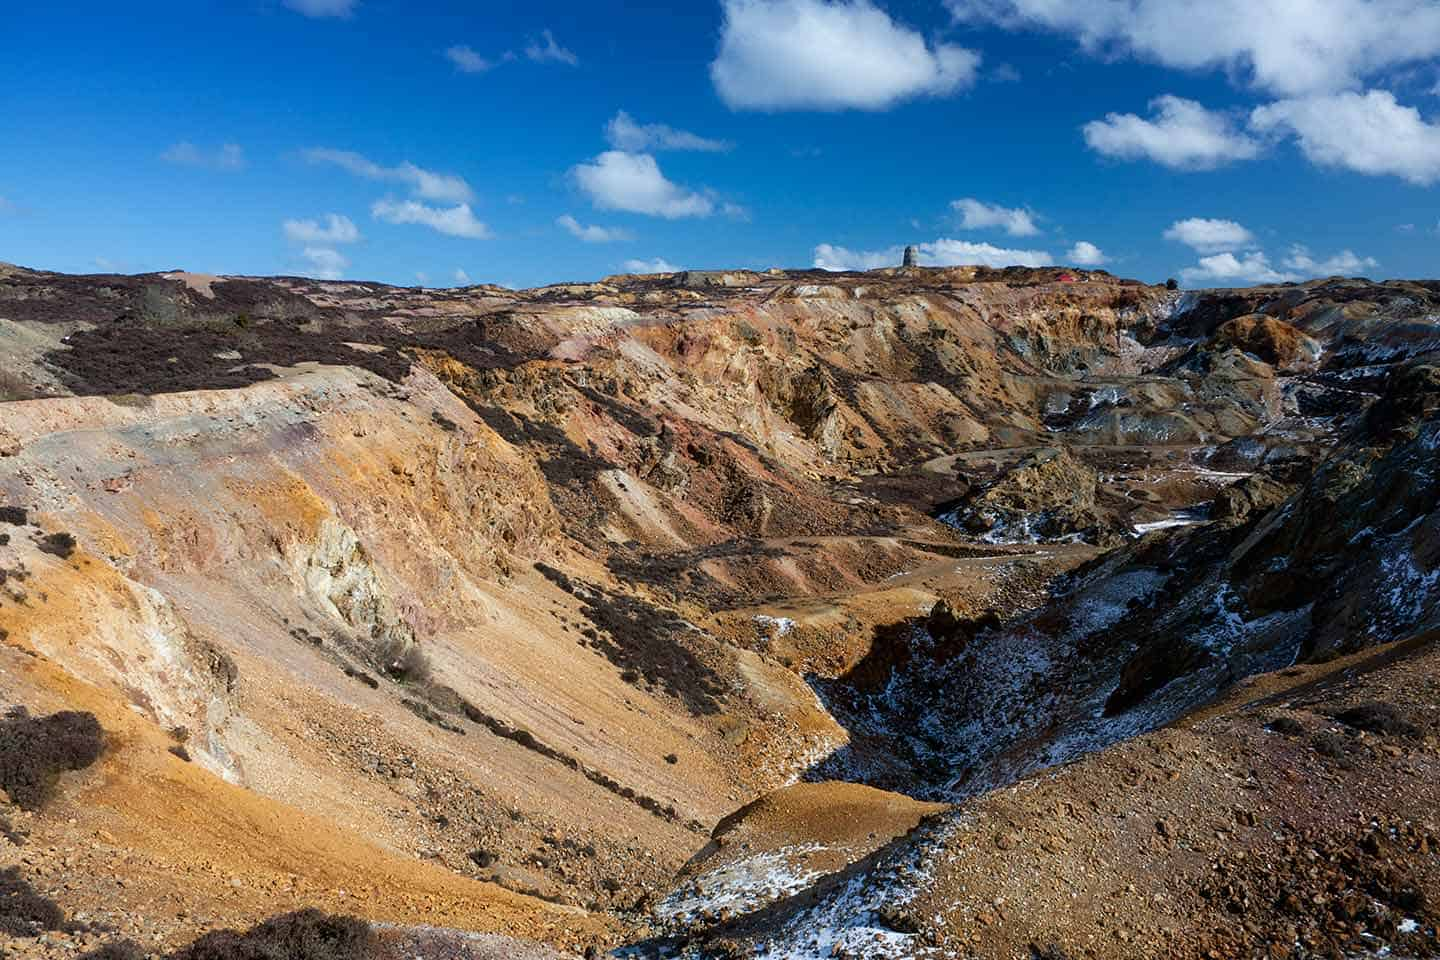 Image of Parys Mountain copper mine, Anglesey